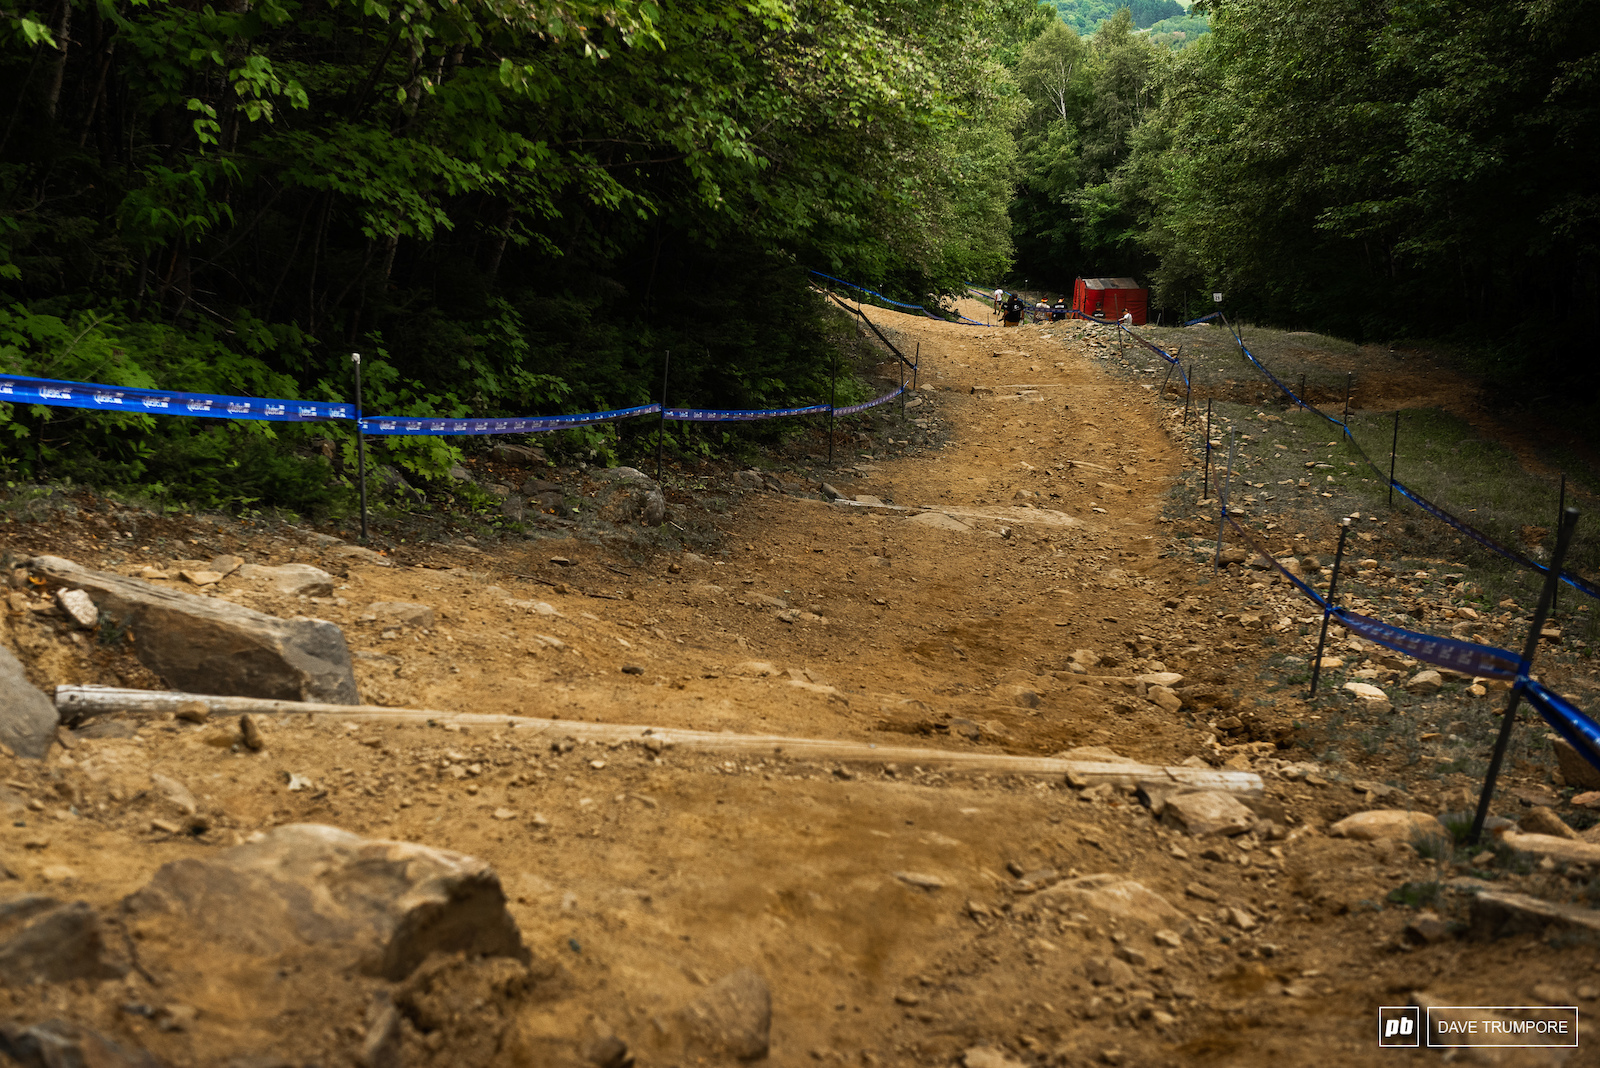 Without a doubt the fasters section of any world cup track out there